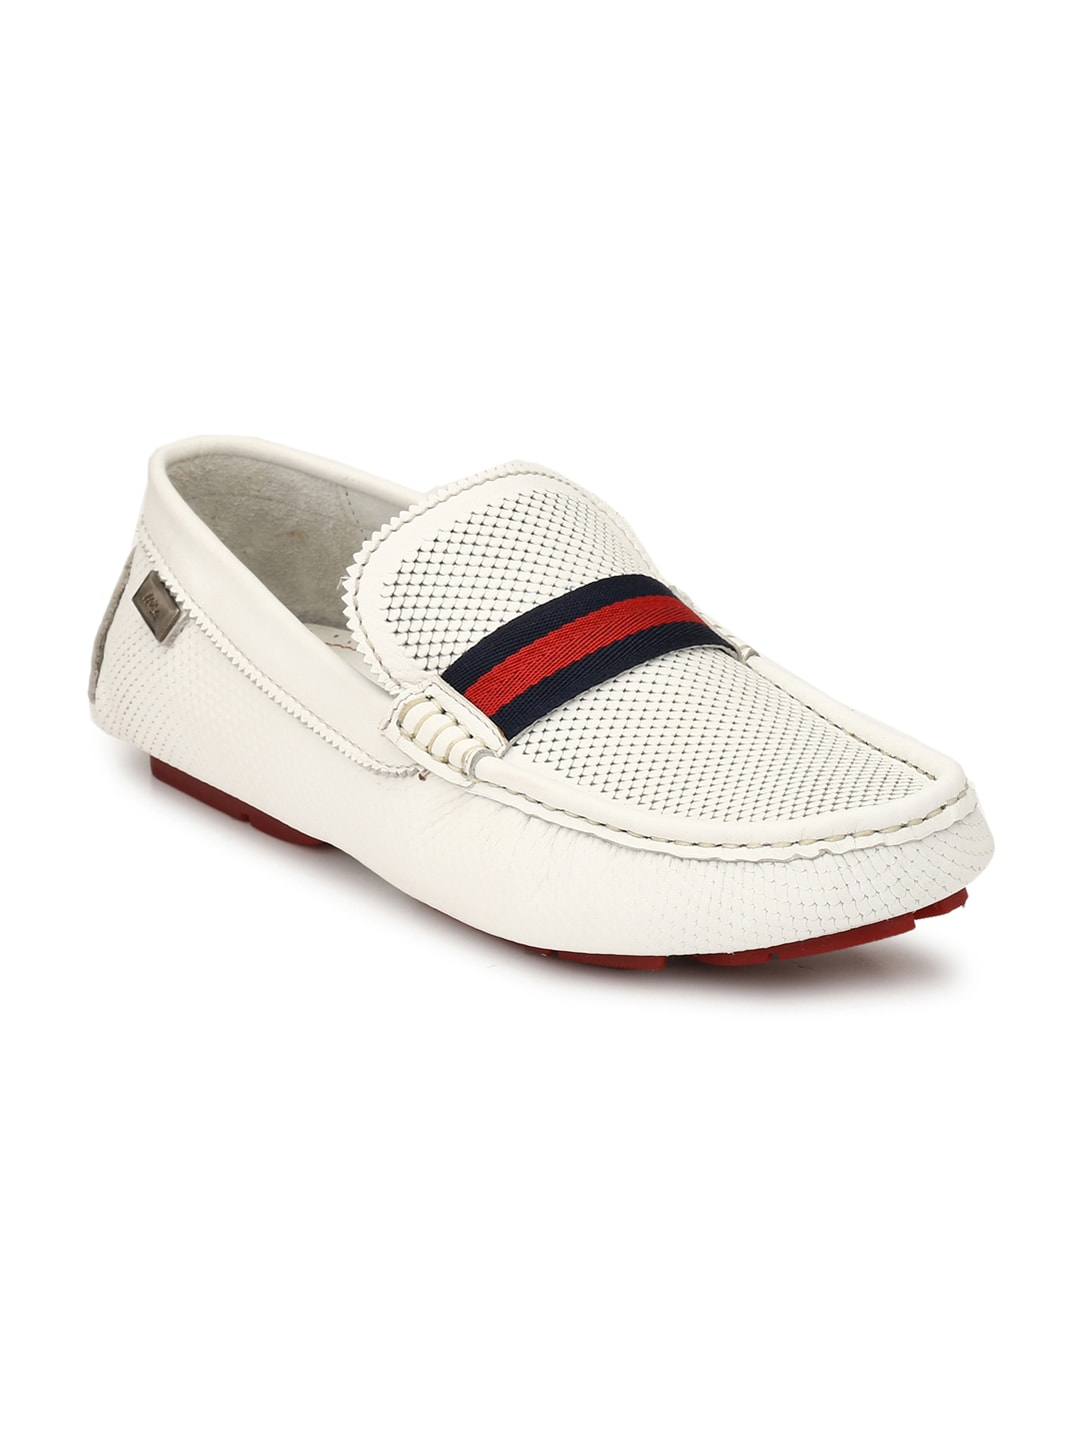 7337af10385 White Loafers For Men - Buy White Loafers For Men online in India